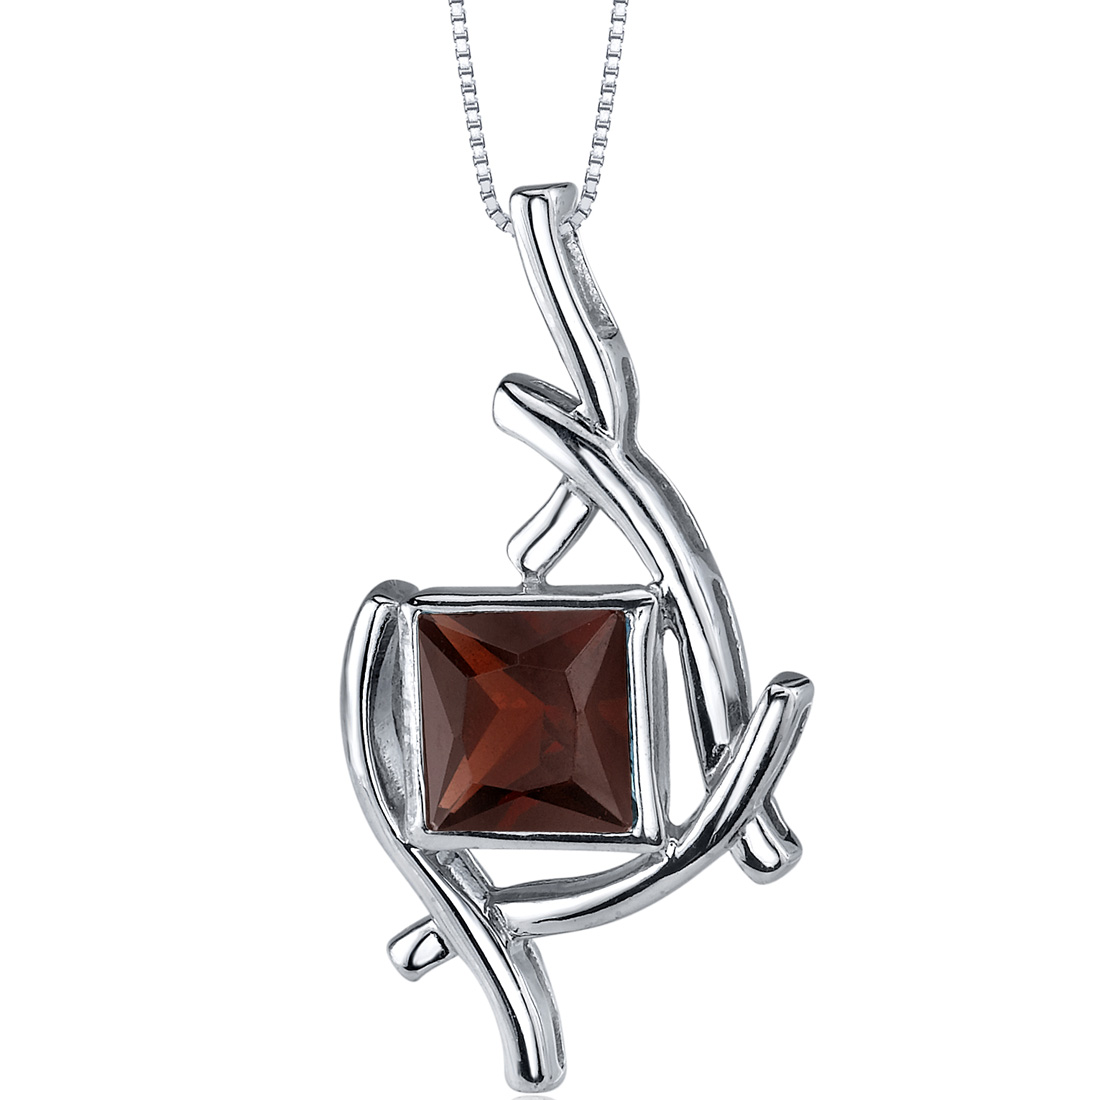 peora Artistic Design 2.00 carats Princess Cut Sterling Silver Garnet Pendant at Sears.com